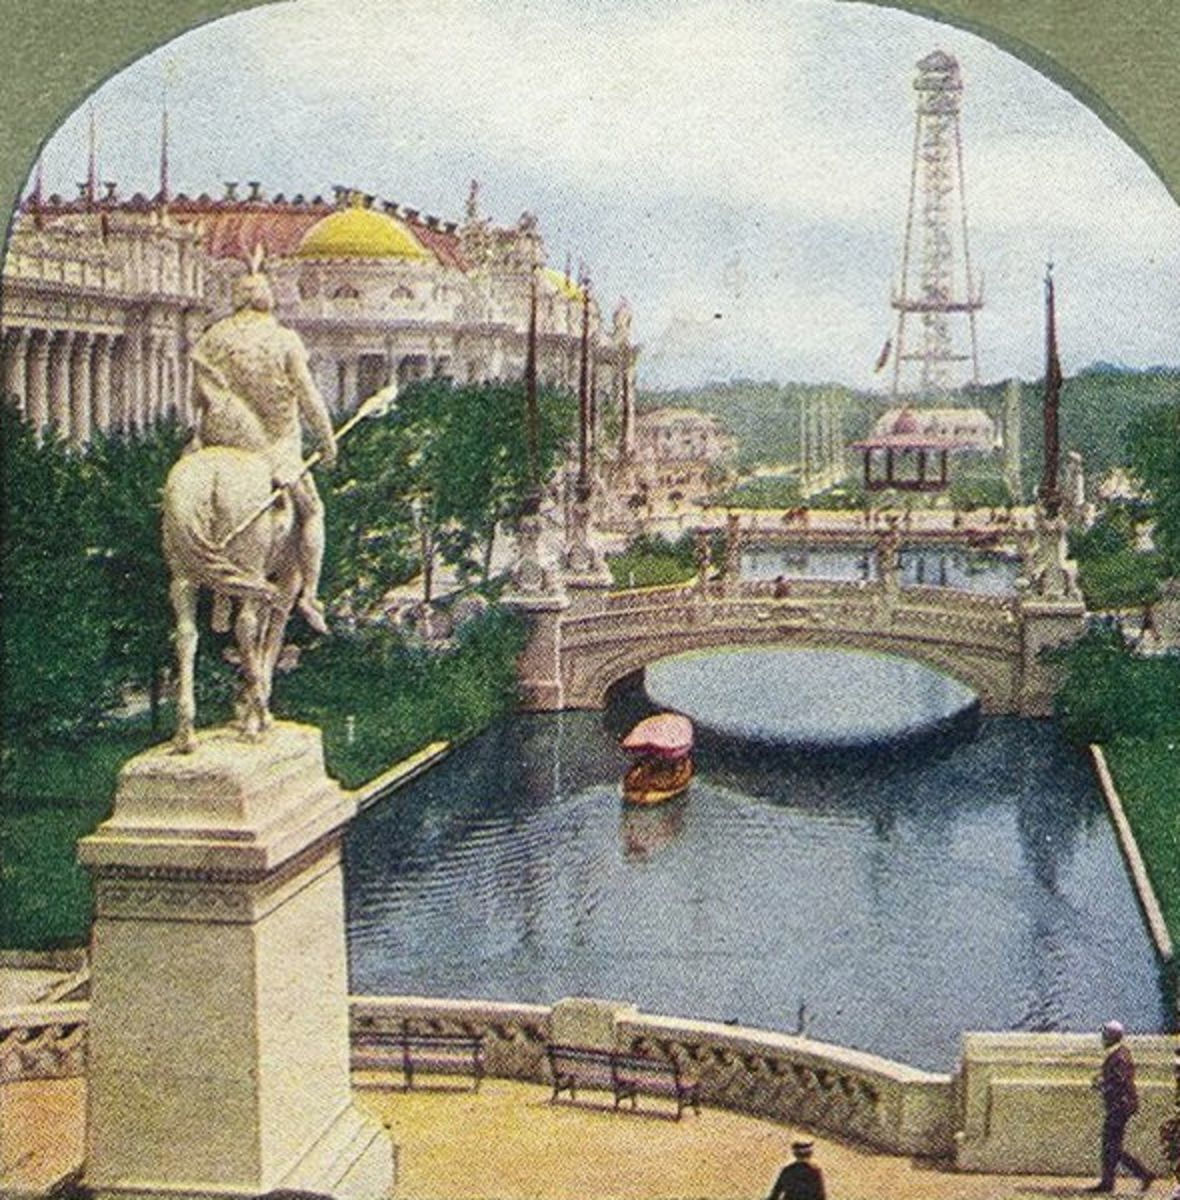 East Lagoon. Statue of Saint Louis in the foreground, with Palaces of Education and Manufacture, and wireless telegraph tower.